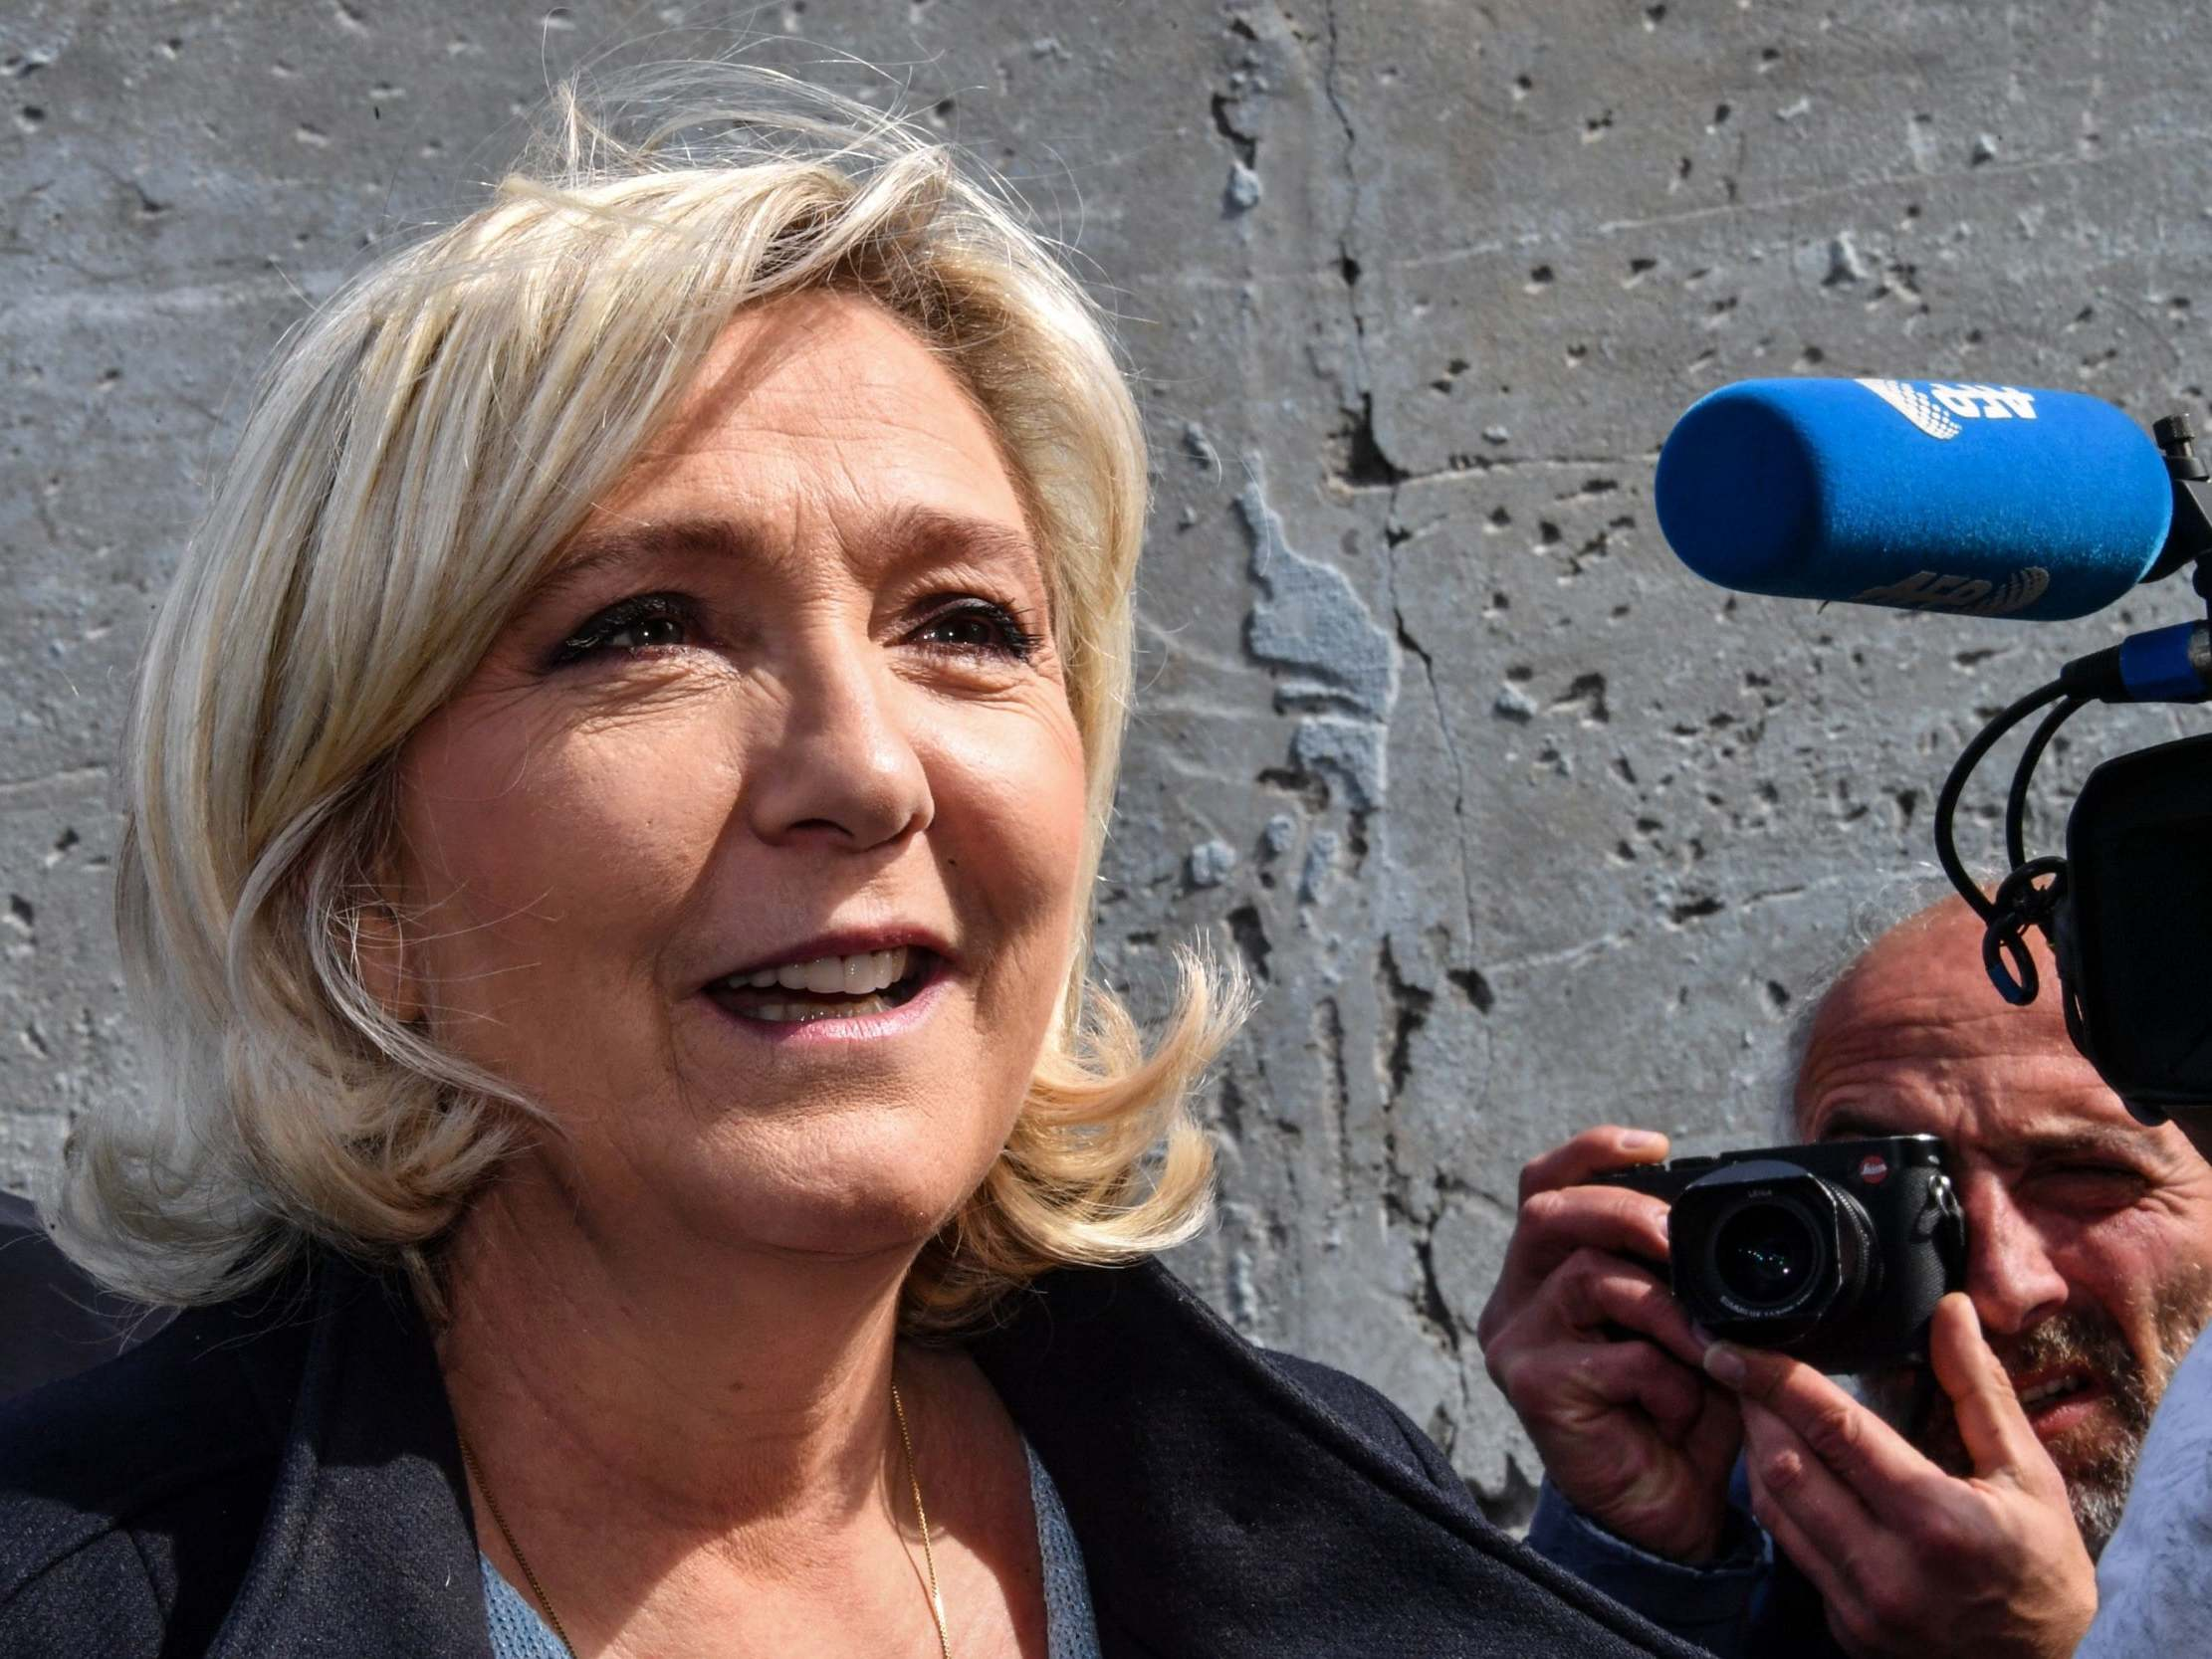 Marine Le Pen ordered to stand trial for tweeting pictures of Isis killings